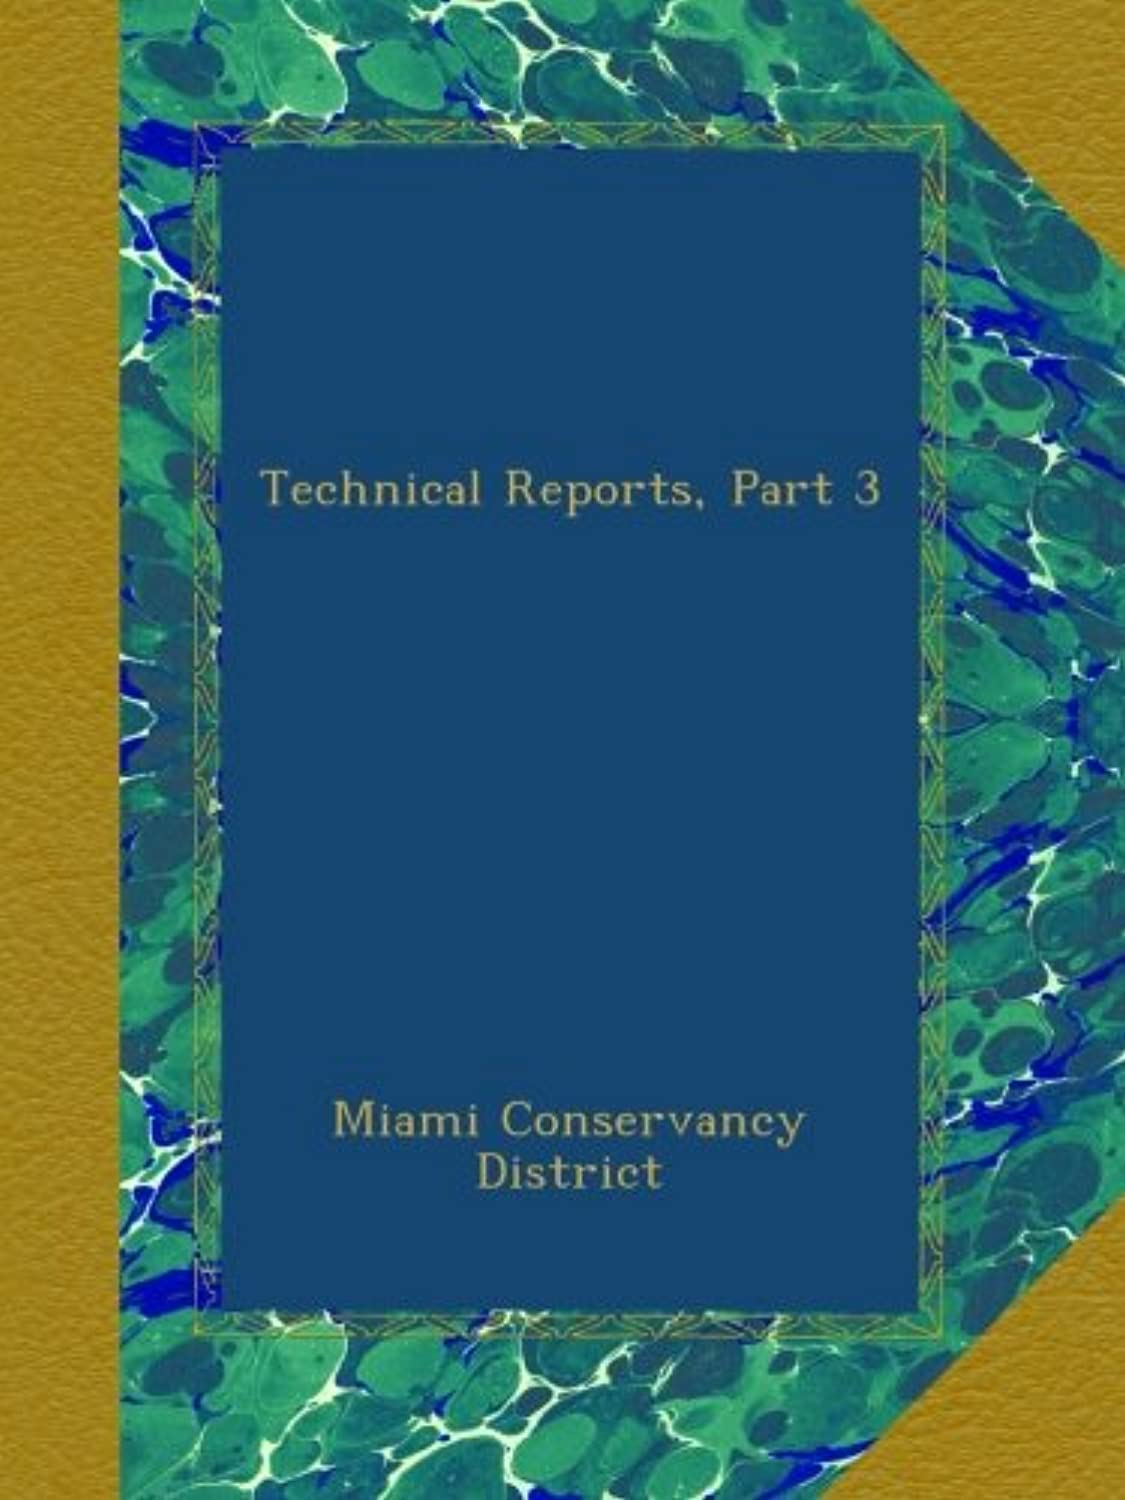 Technical Reports, Part 3